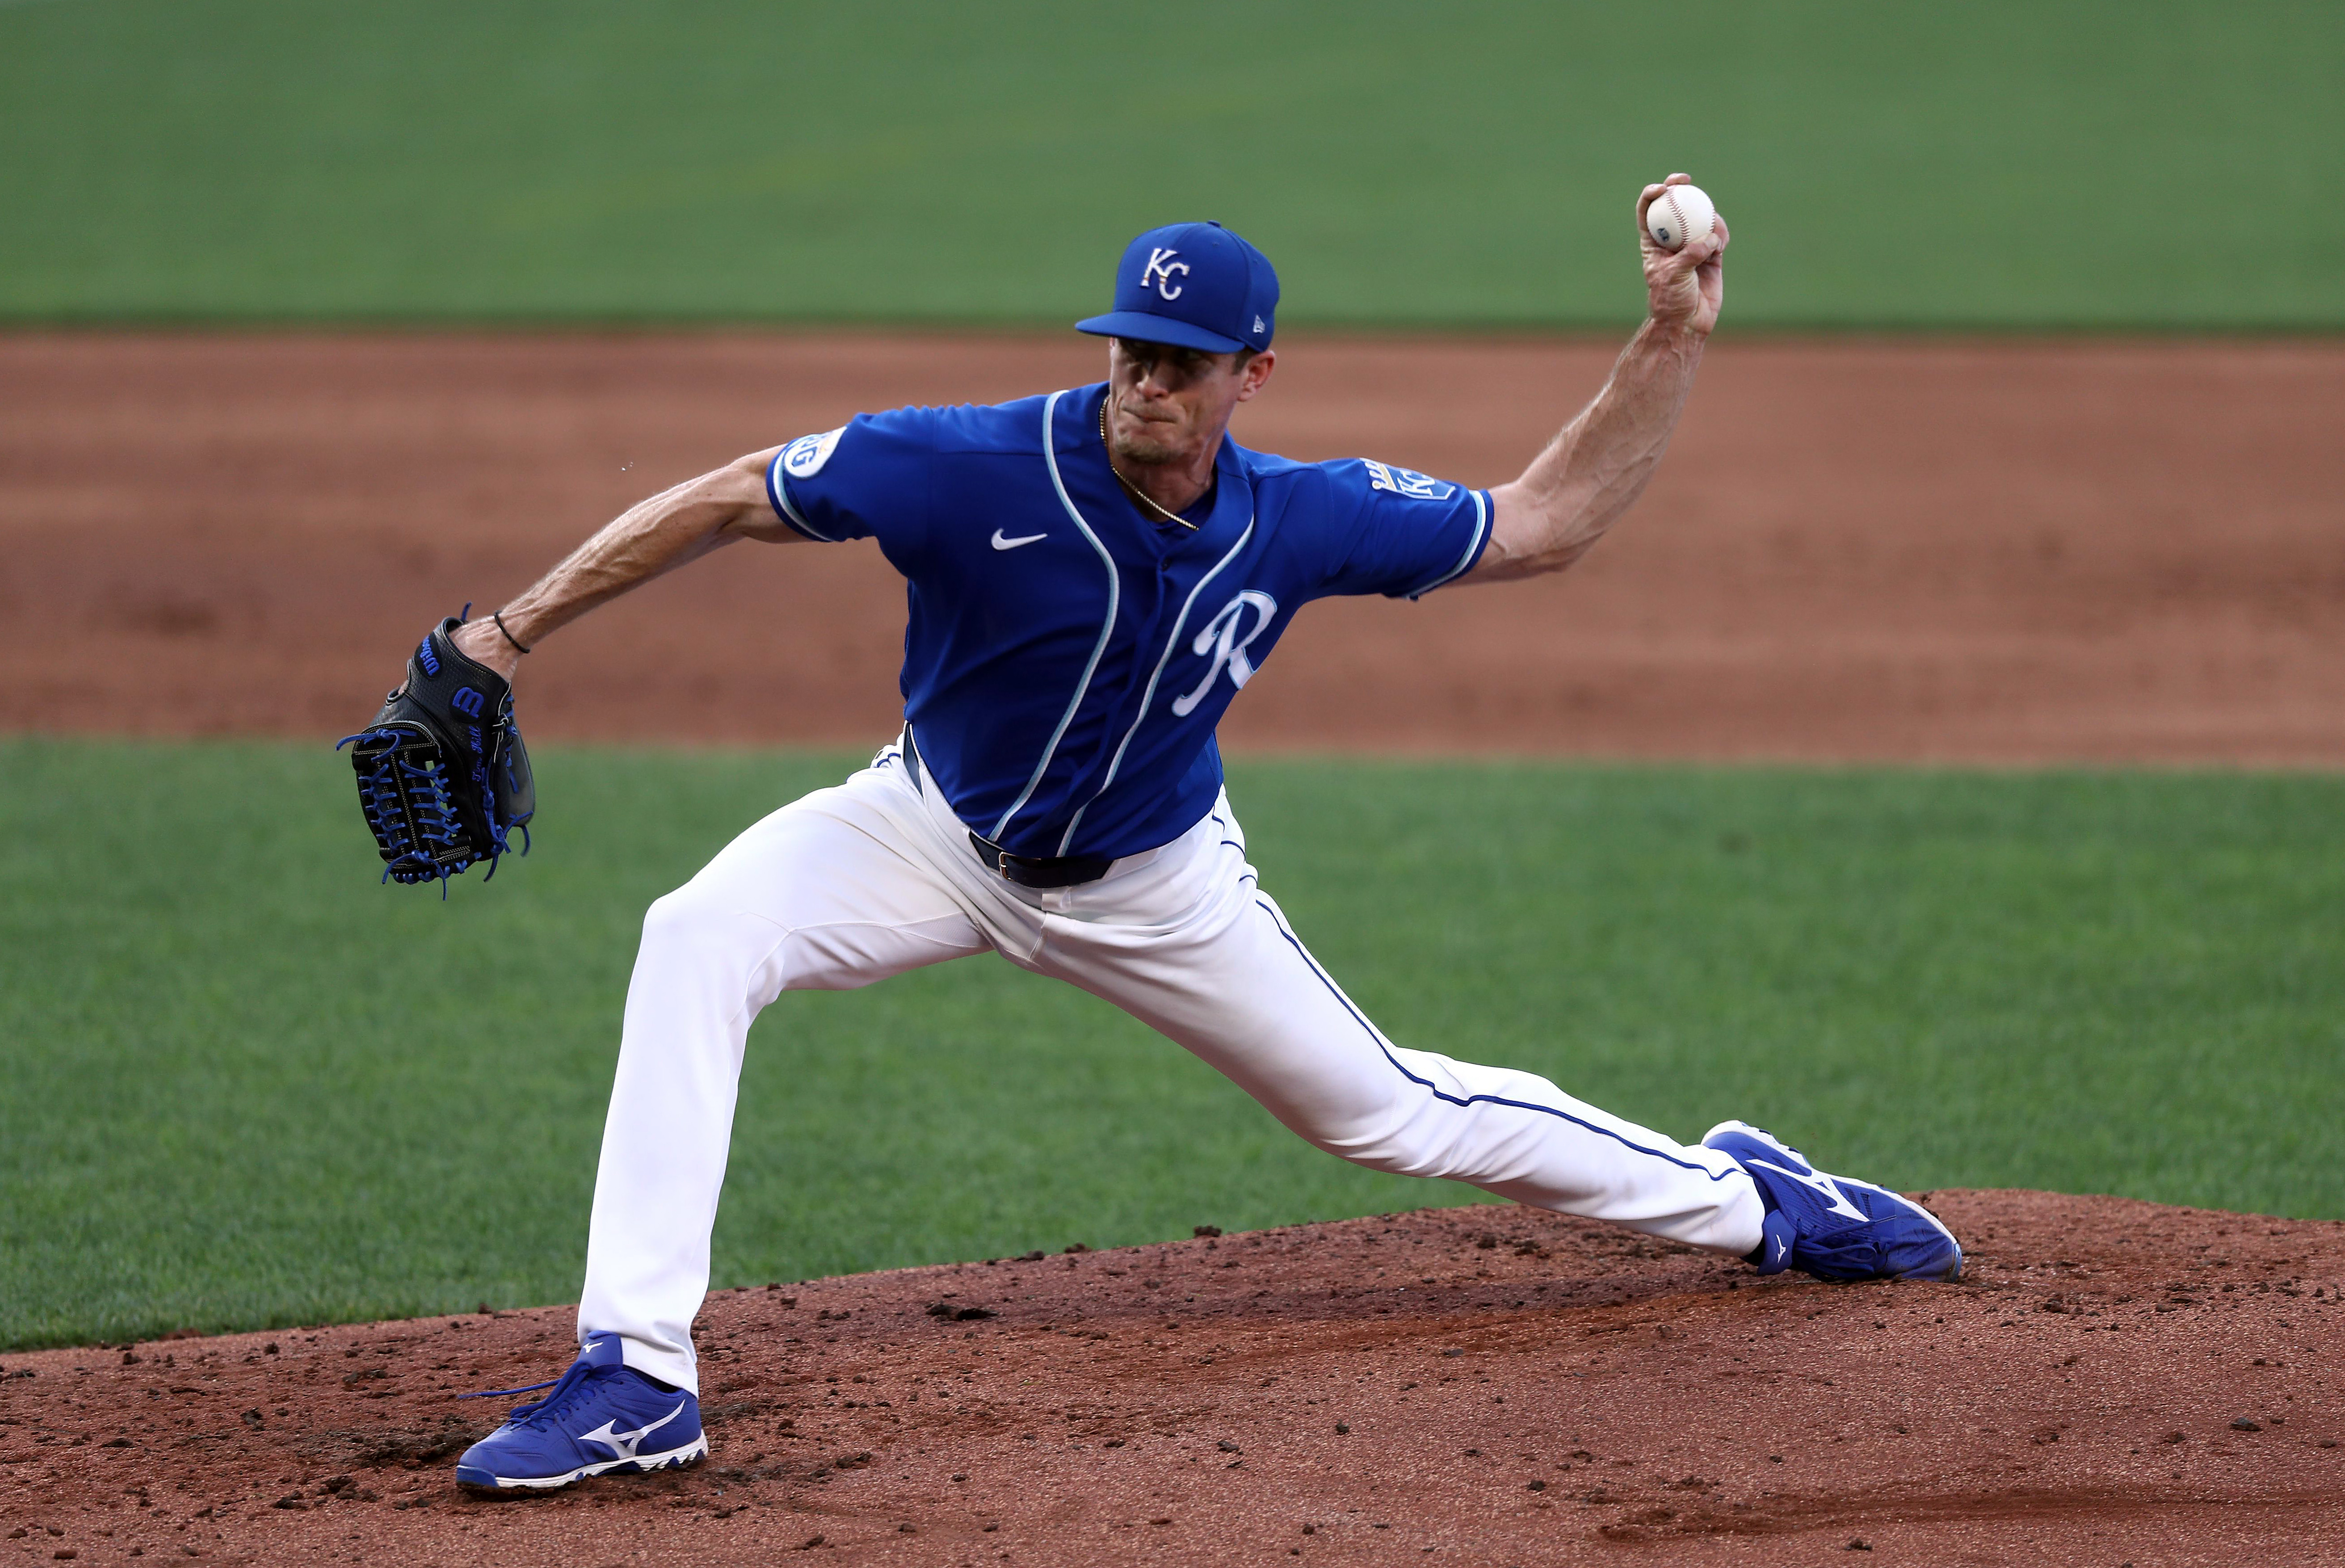 Pitcher Tim Hill #54 of the Kansas City Royals pitches during an inter-squad scrimmage as part of summer workouts at Kauffman Stadium on July 10, 2020 in Kansas City, Missouri.